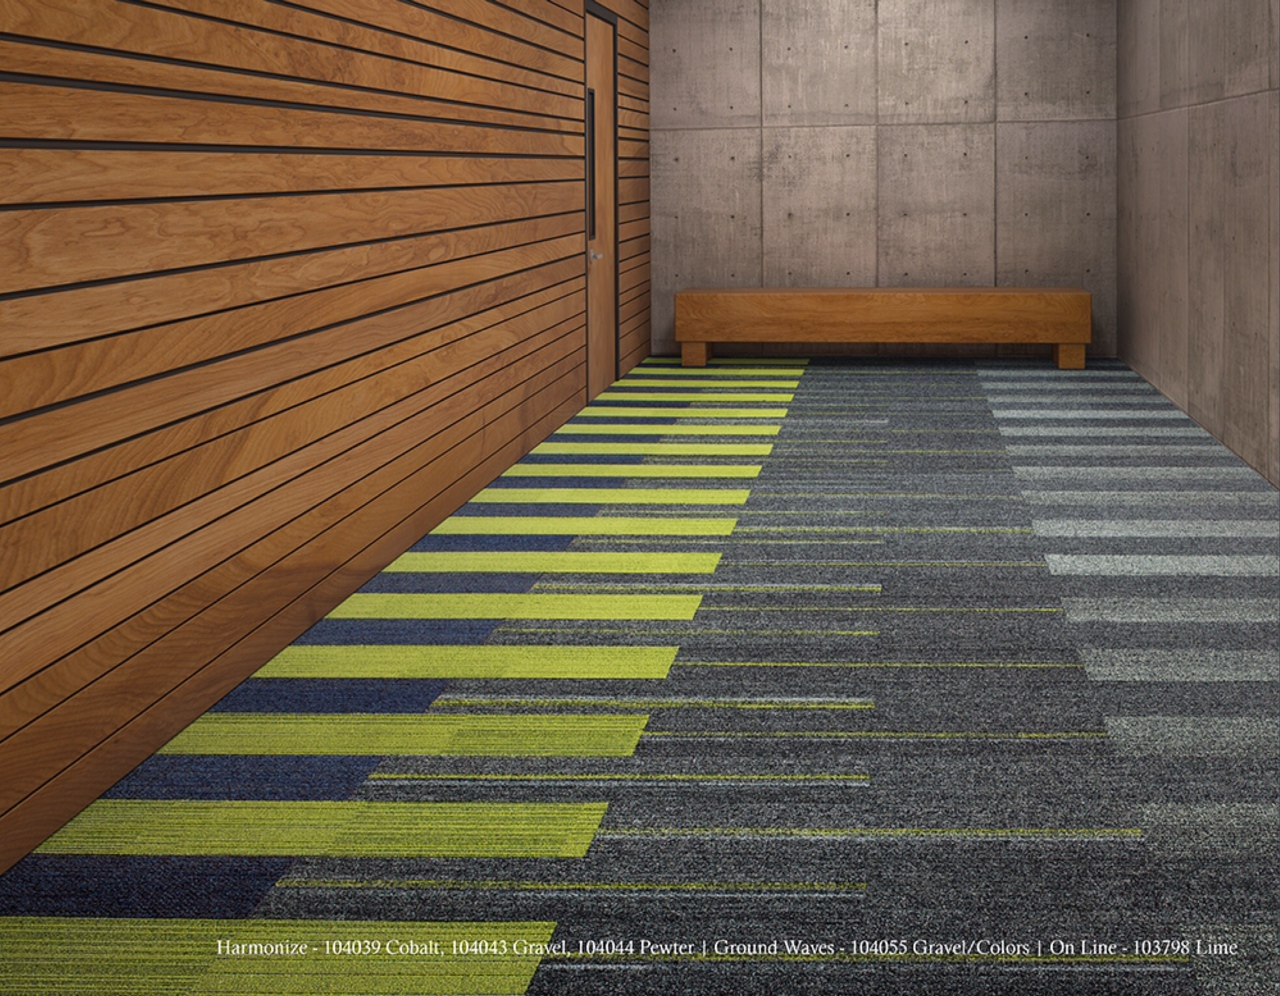 Drawn planks office Drawn Waves Conceptual & submitted